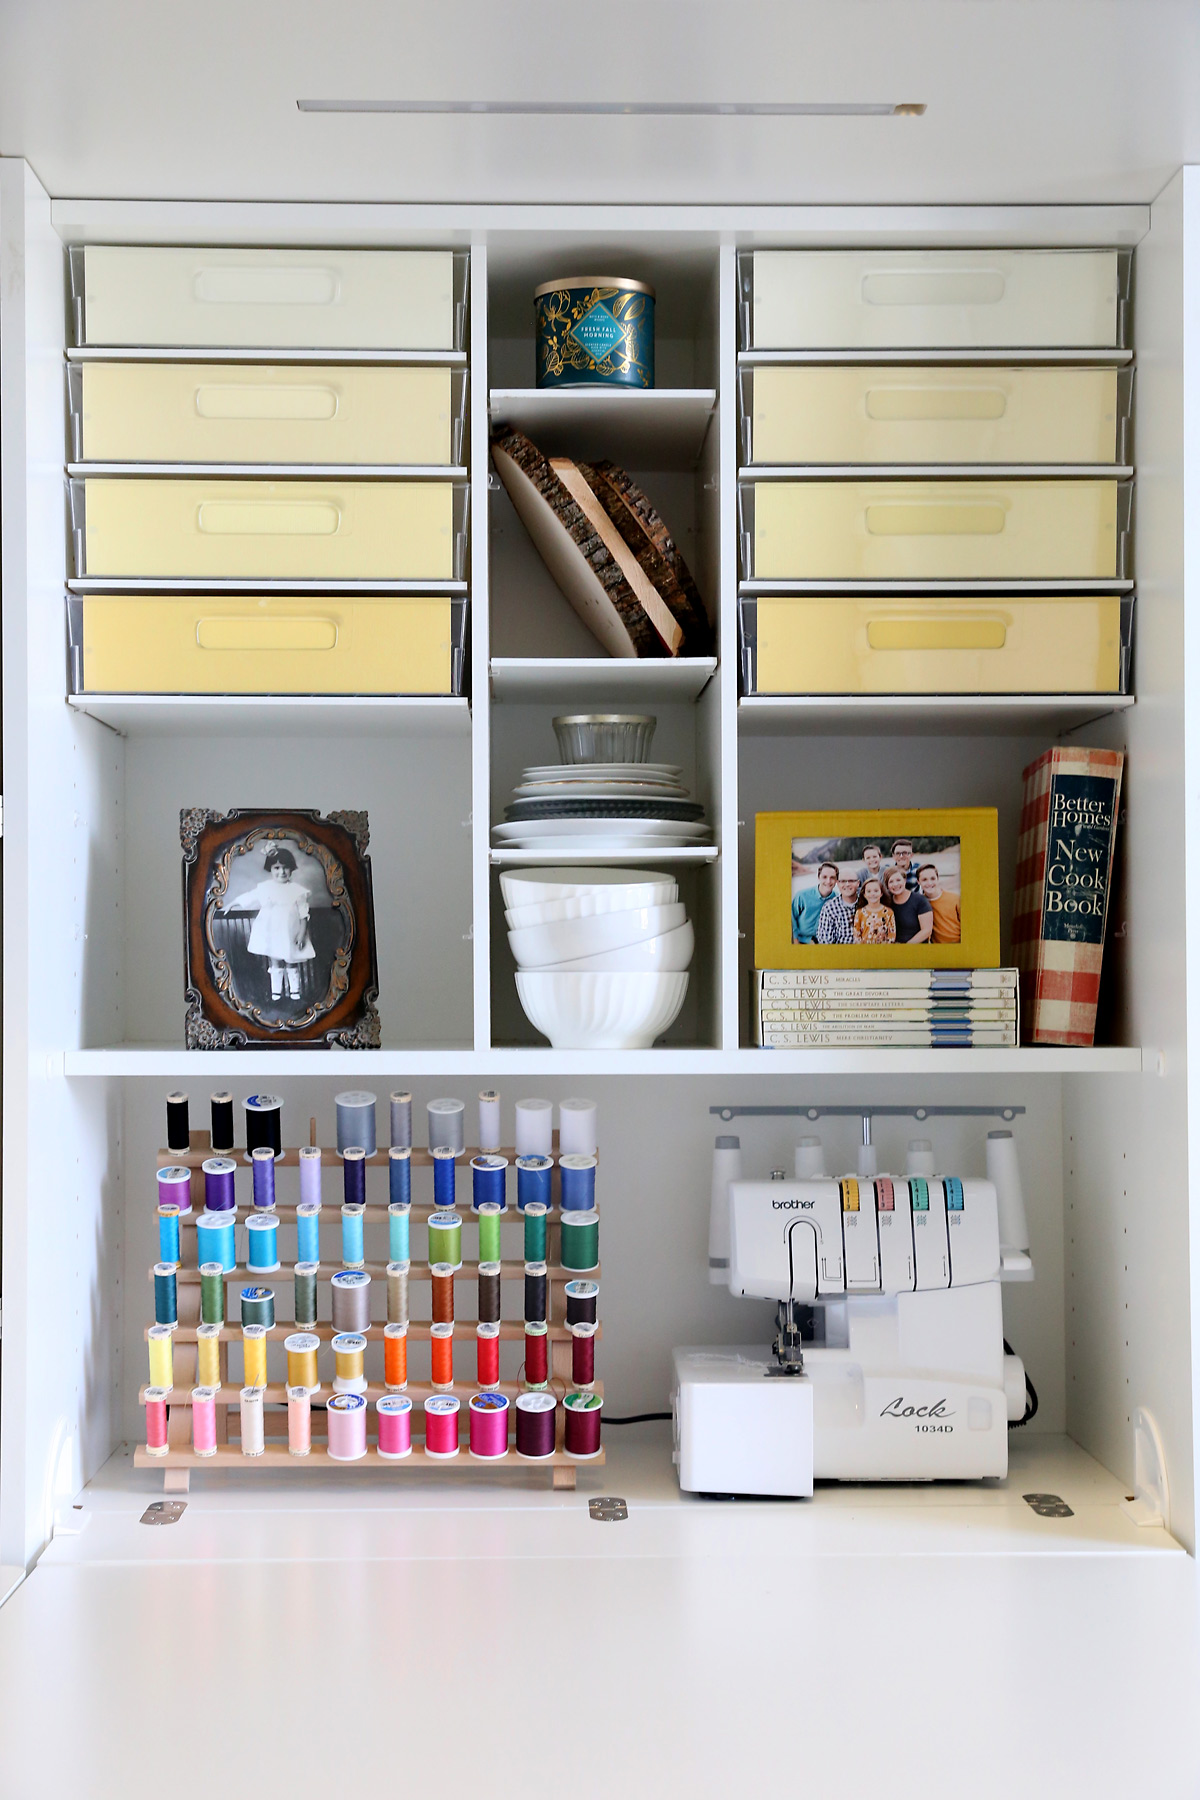 Shelves in a DreamBox with bins, books, sewing machine and thread spool